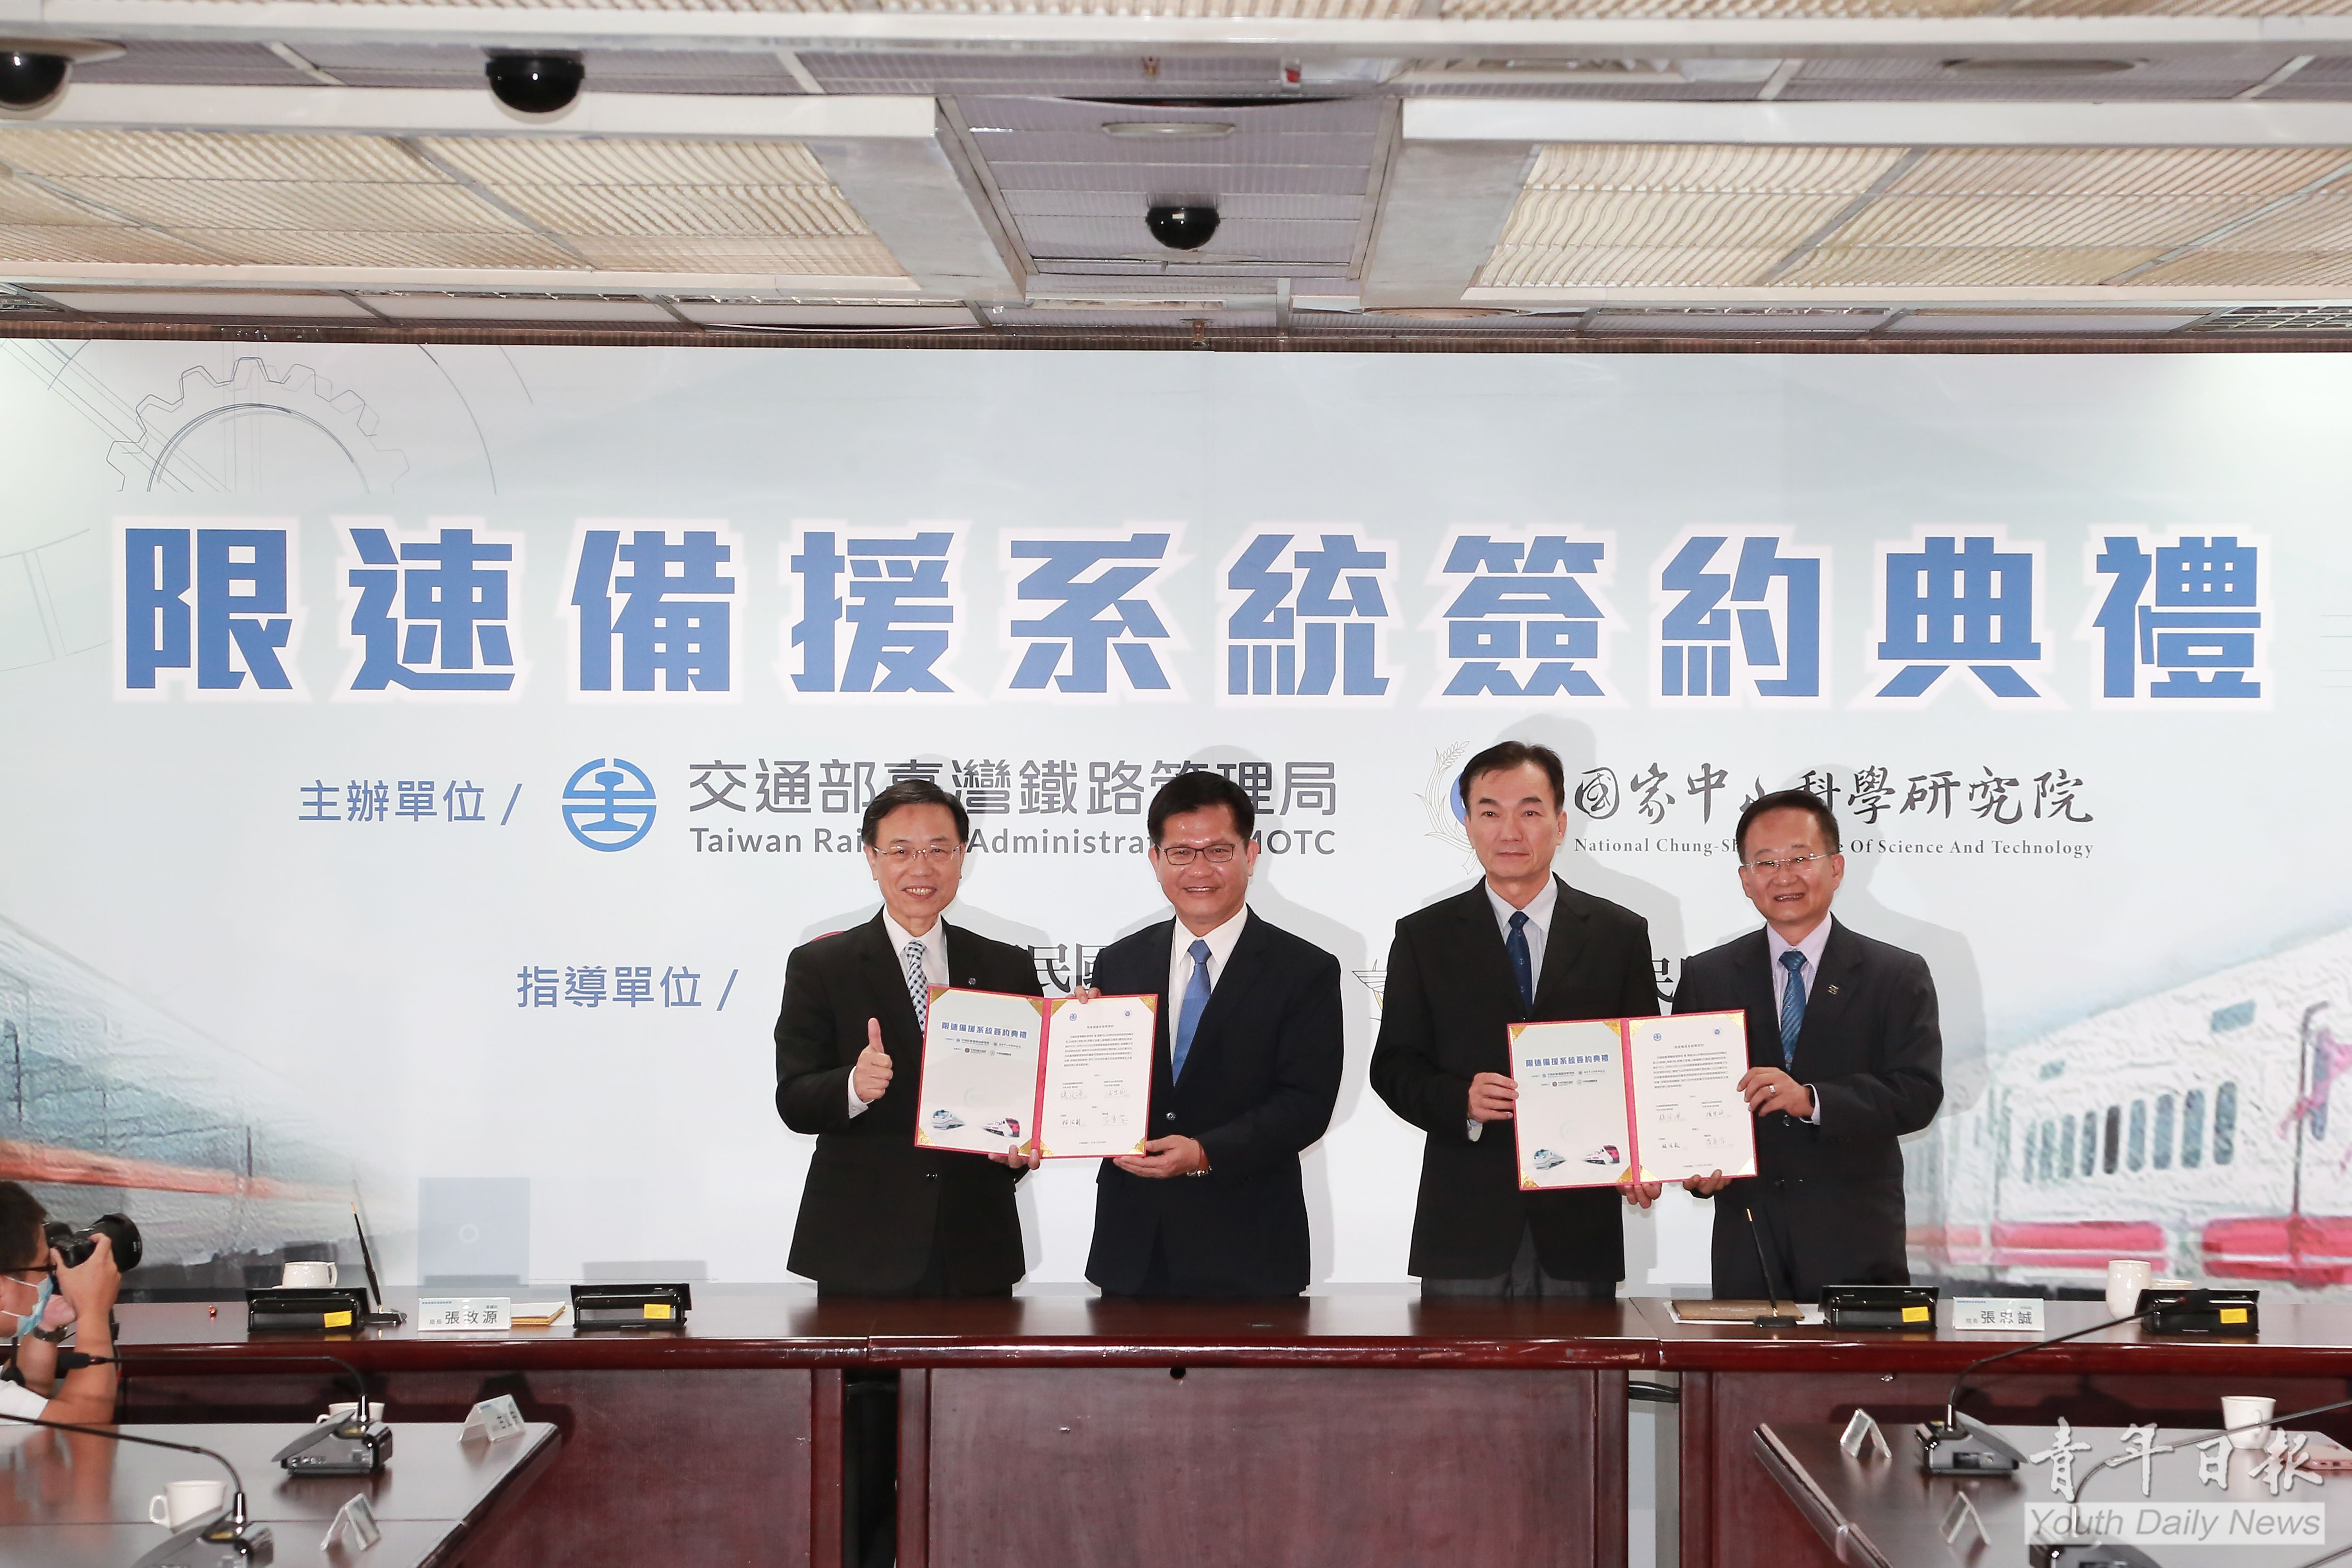 Taiwan Railways Signs Contract with NCSIST to Build The Speed Limit Backup System for Safety